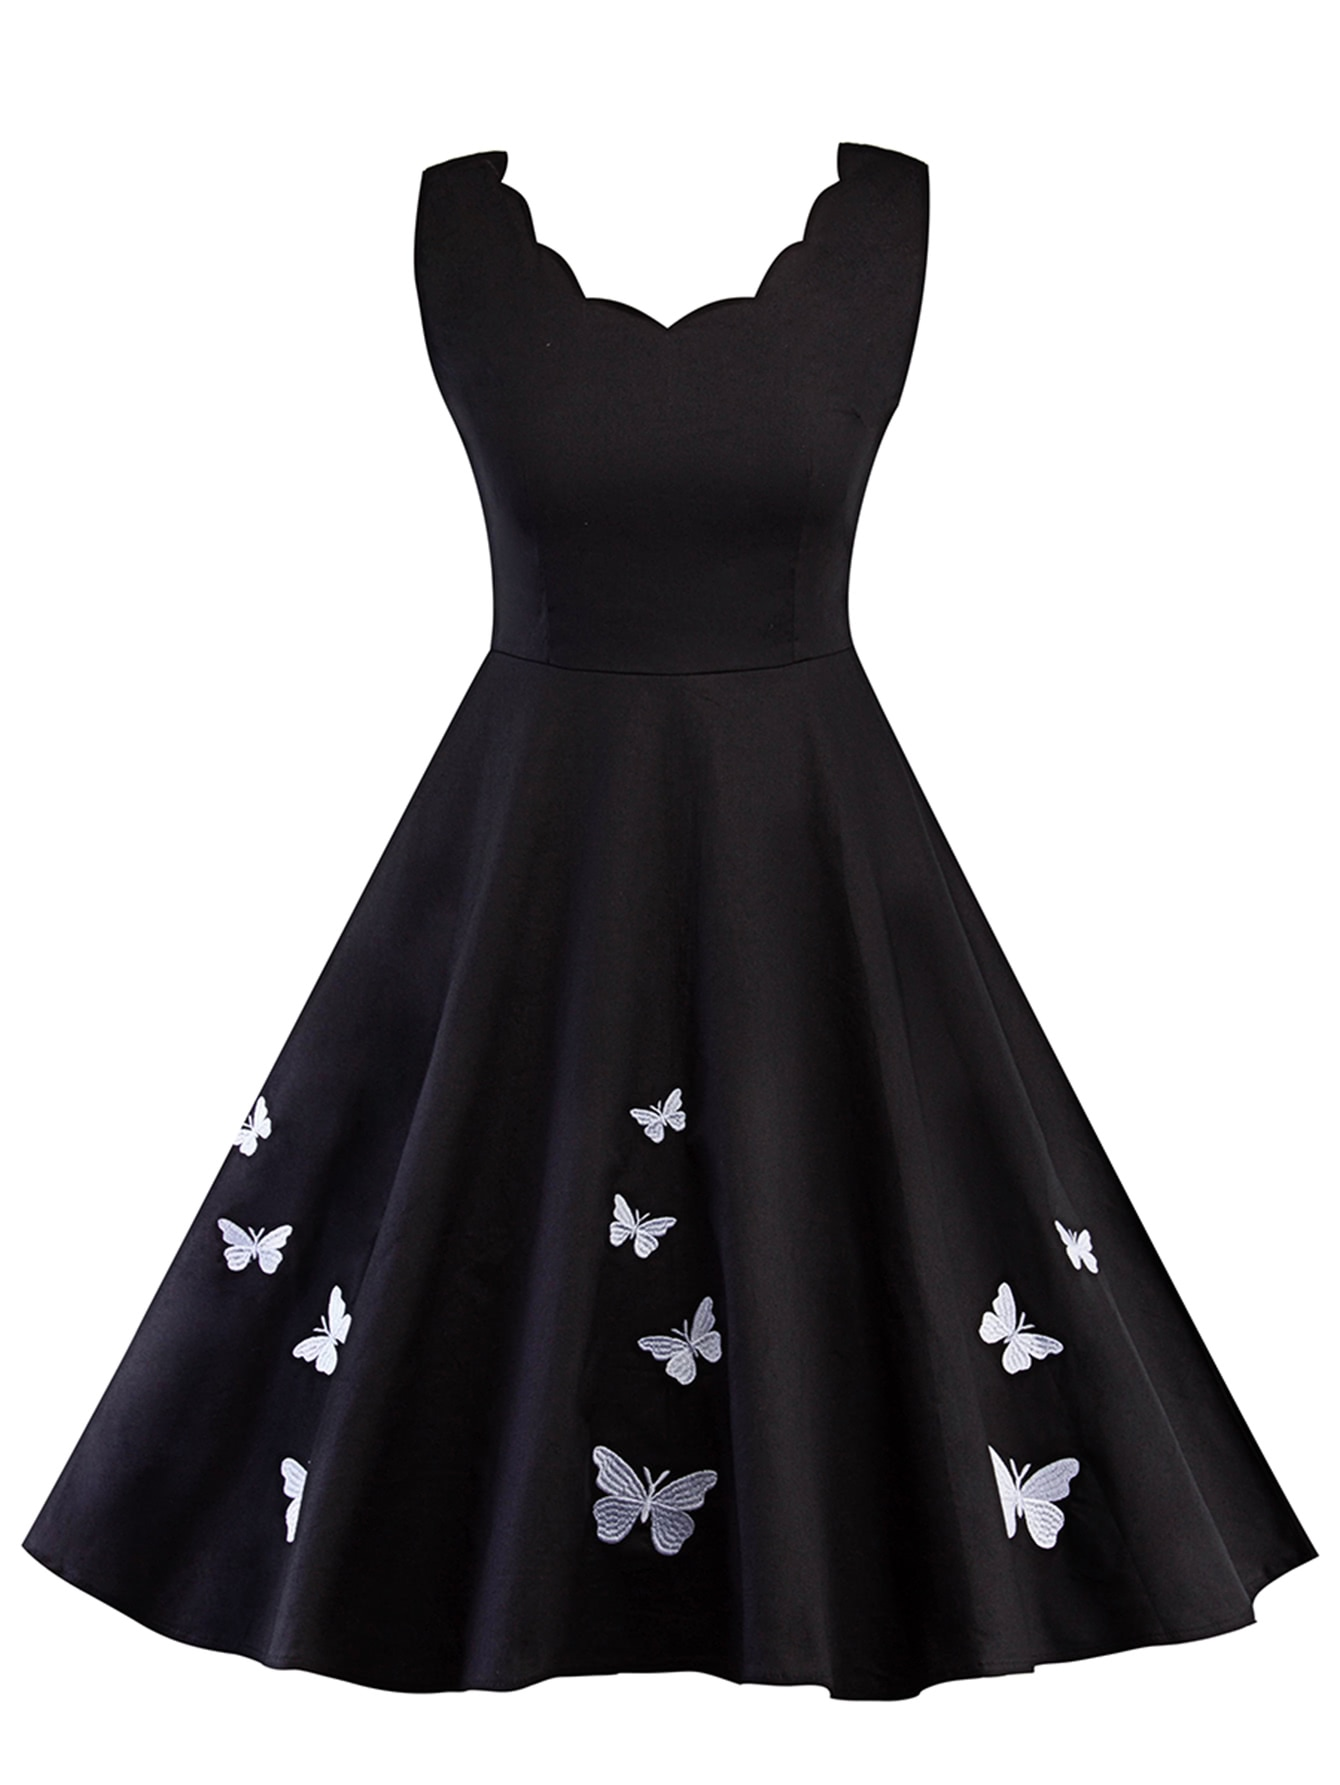 Scallop edge butterfly embroidered circle dress shein